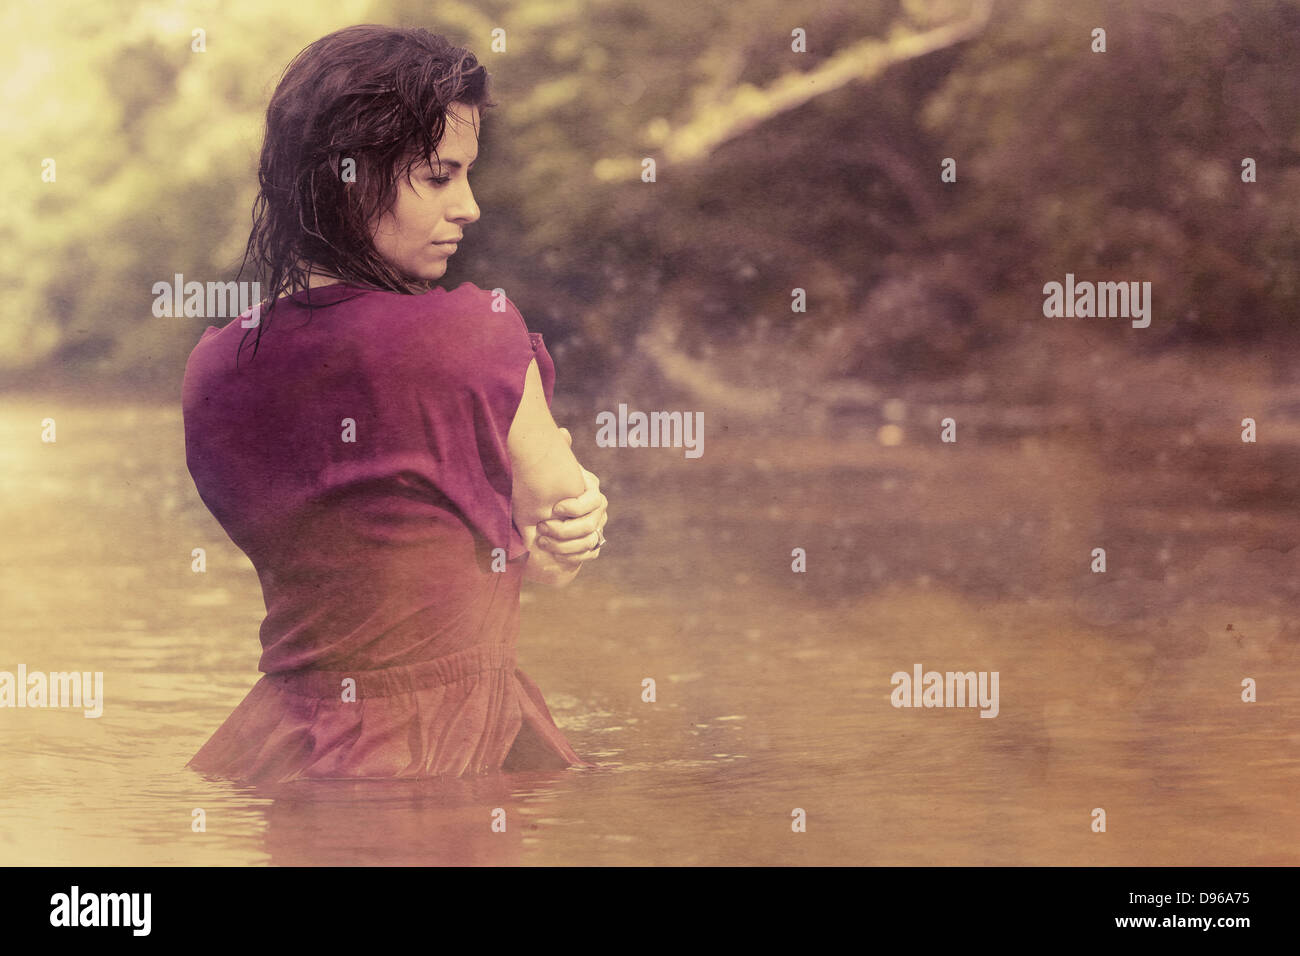 Woman in dress standing in mist covered water - Stock Image